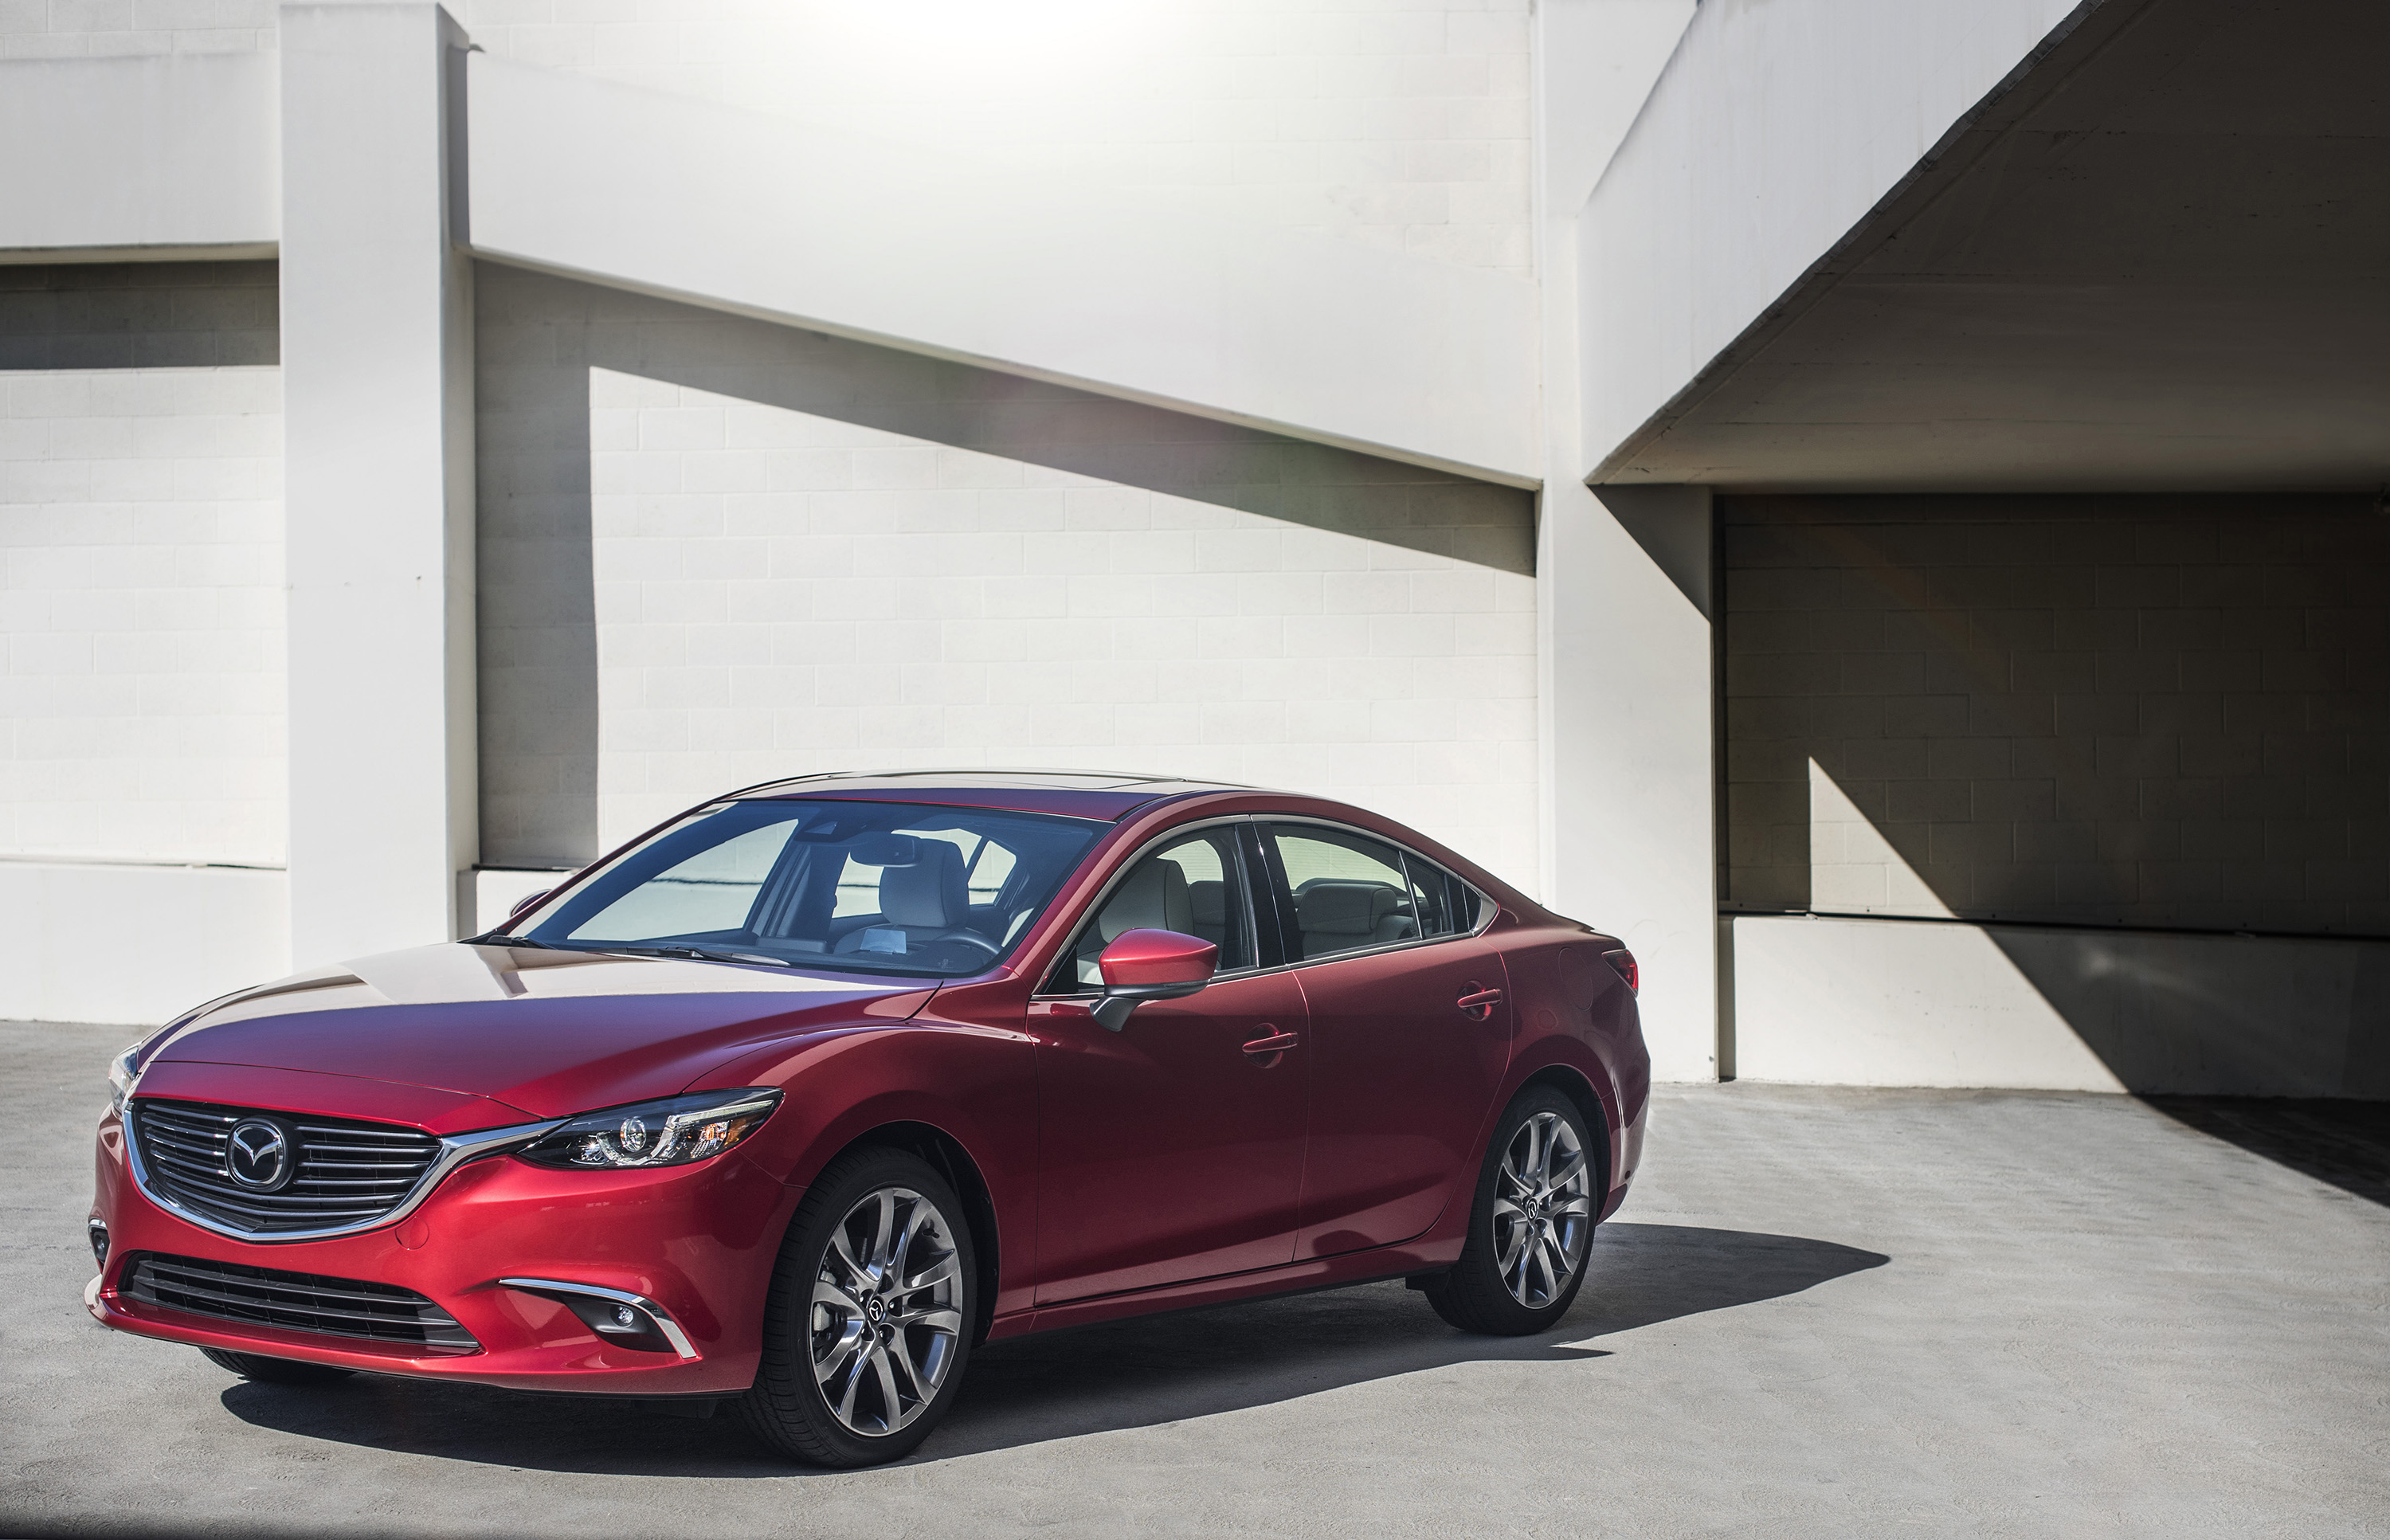 2017.5 Mazda6 Sedan Adds Available Leather to the Core of Mazda's Midsize Mix